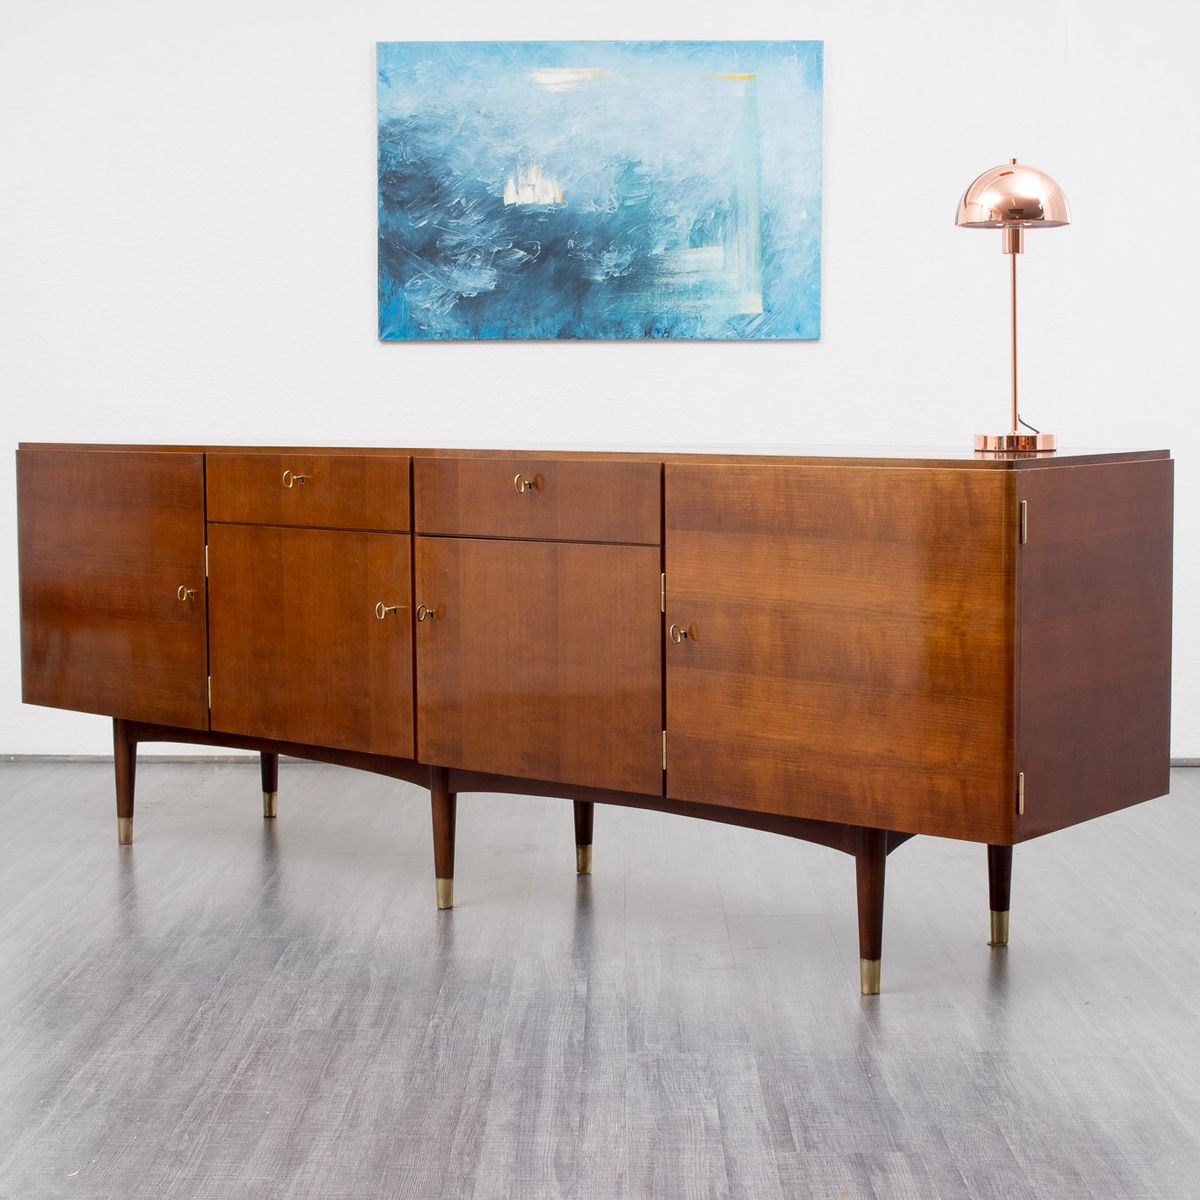 Xl vintage sideboard 1950er bei pamono kaufen for Sideboard 2 50 m